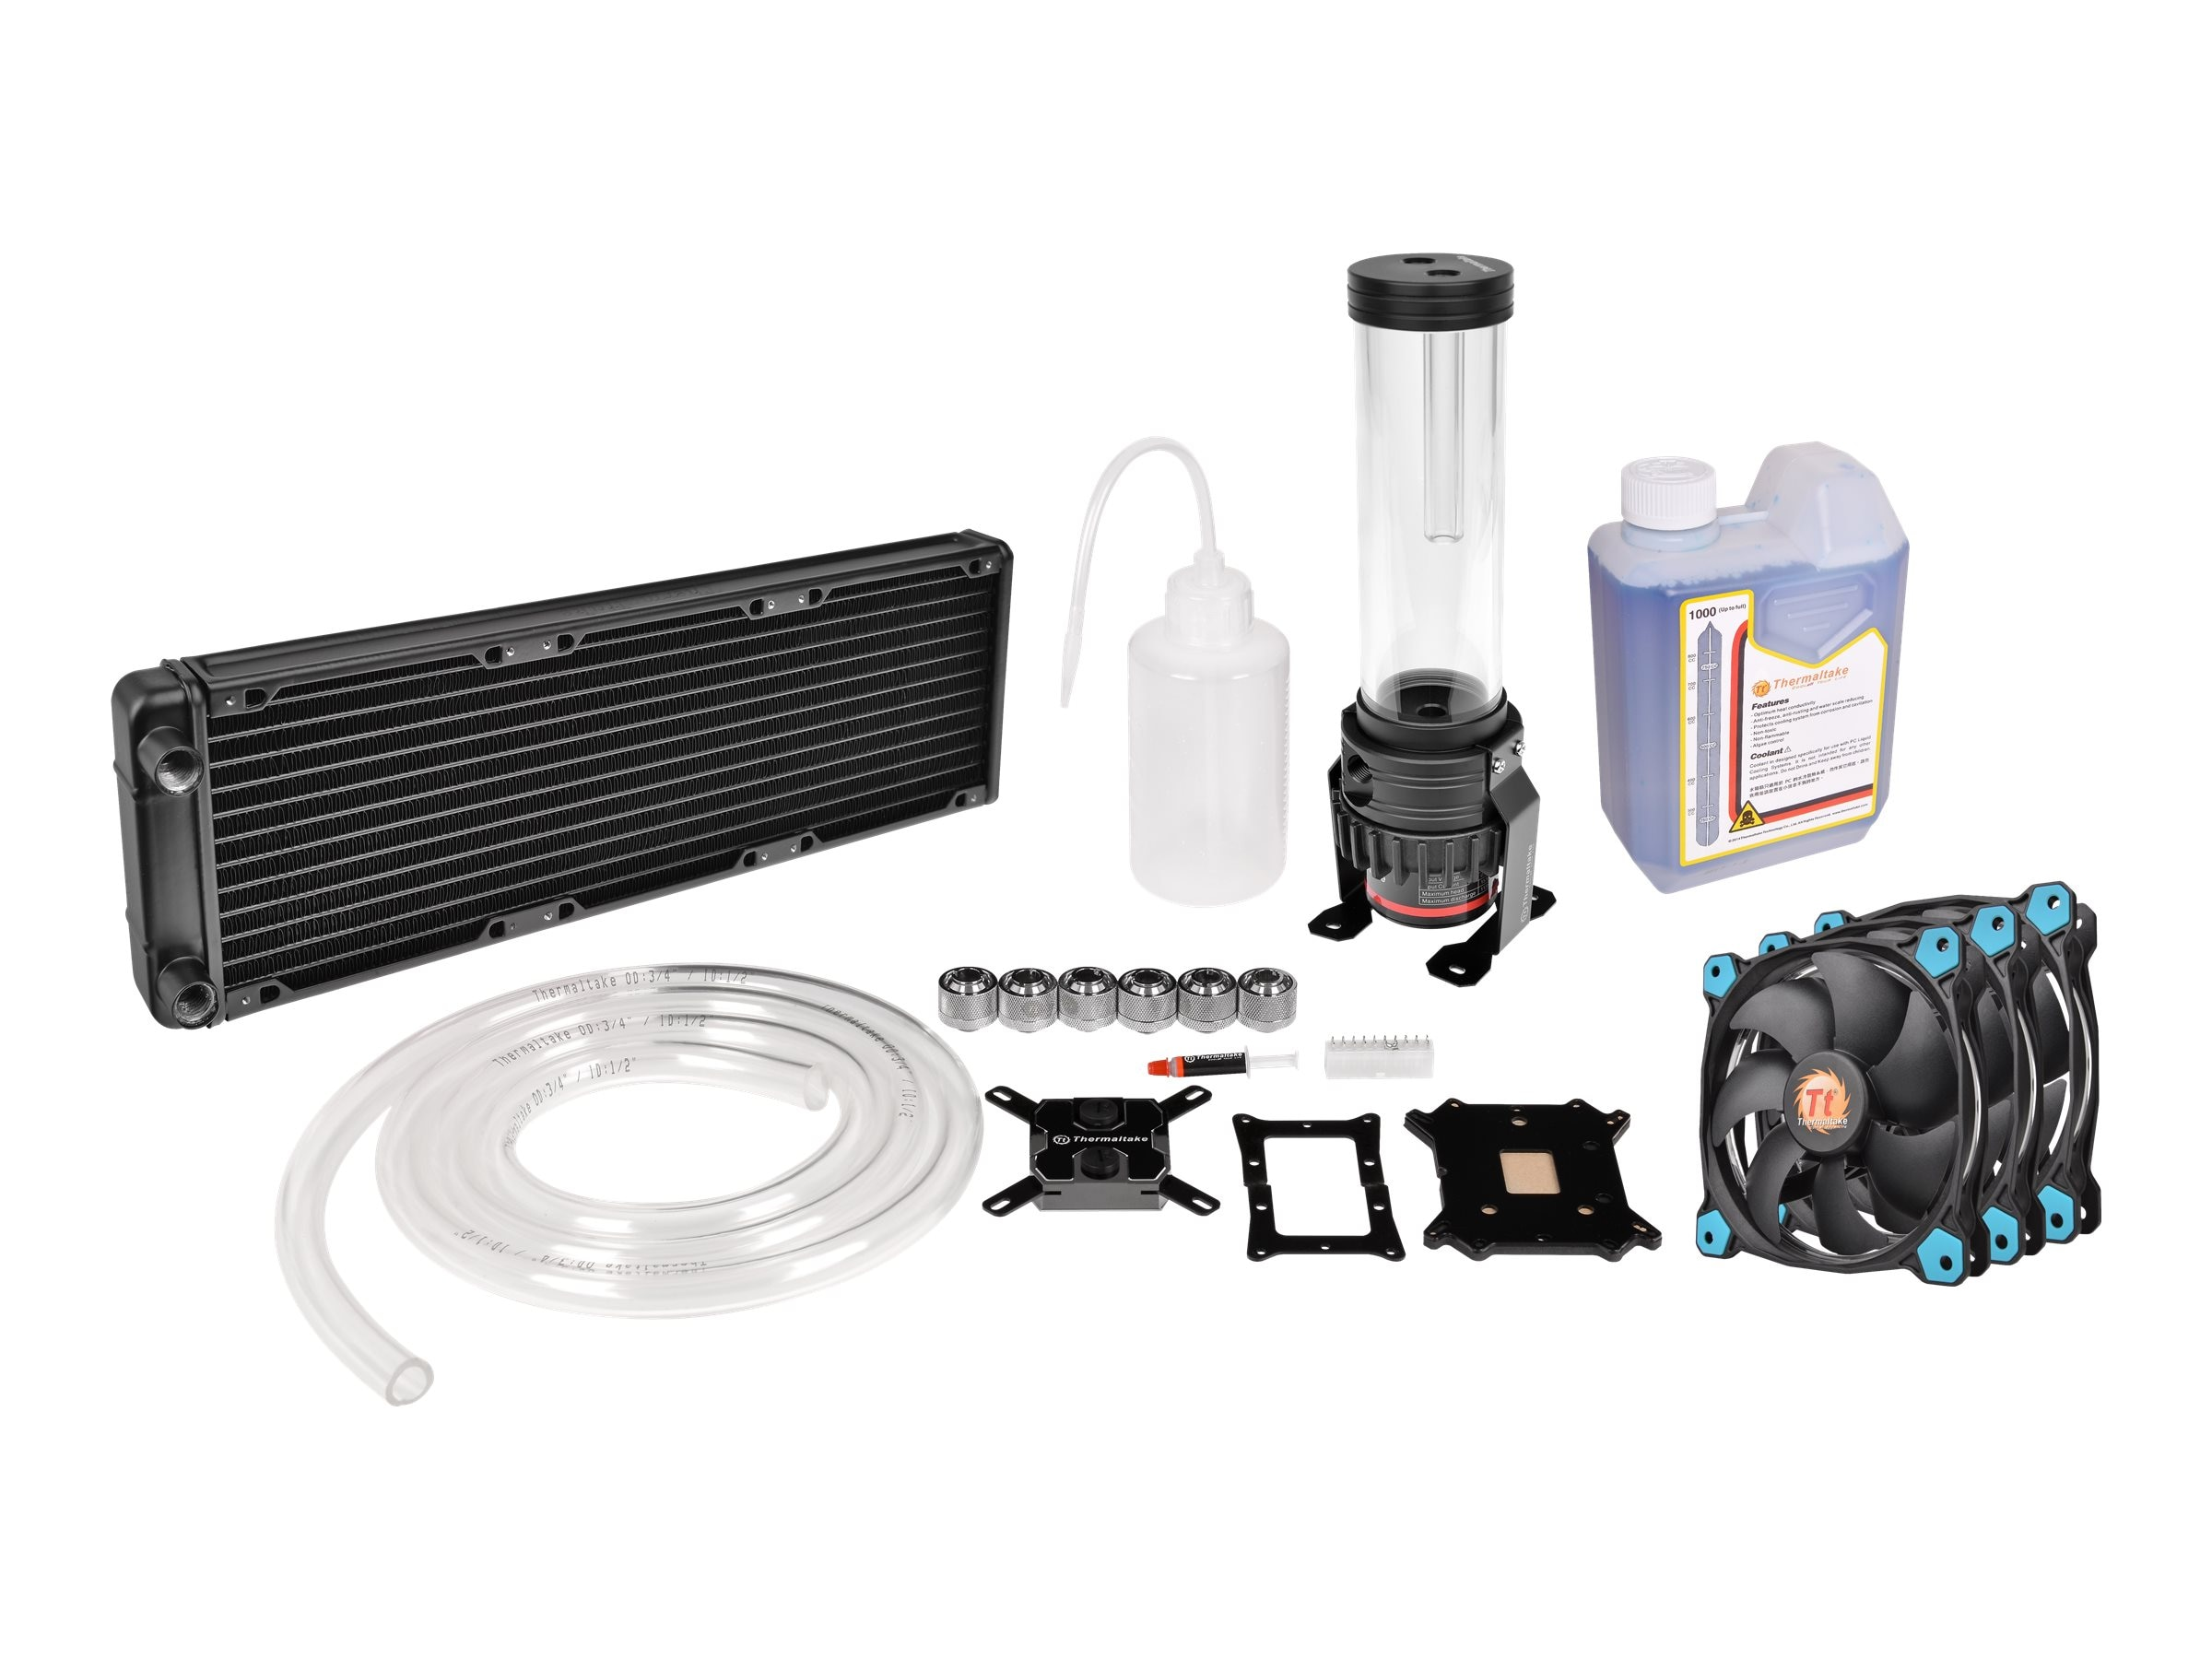 Thermaltake Pacific R360 Water Cooling Kit with Block, Pump, Reservoir, Radiator, and (3x)Riing LED Fans